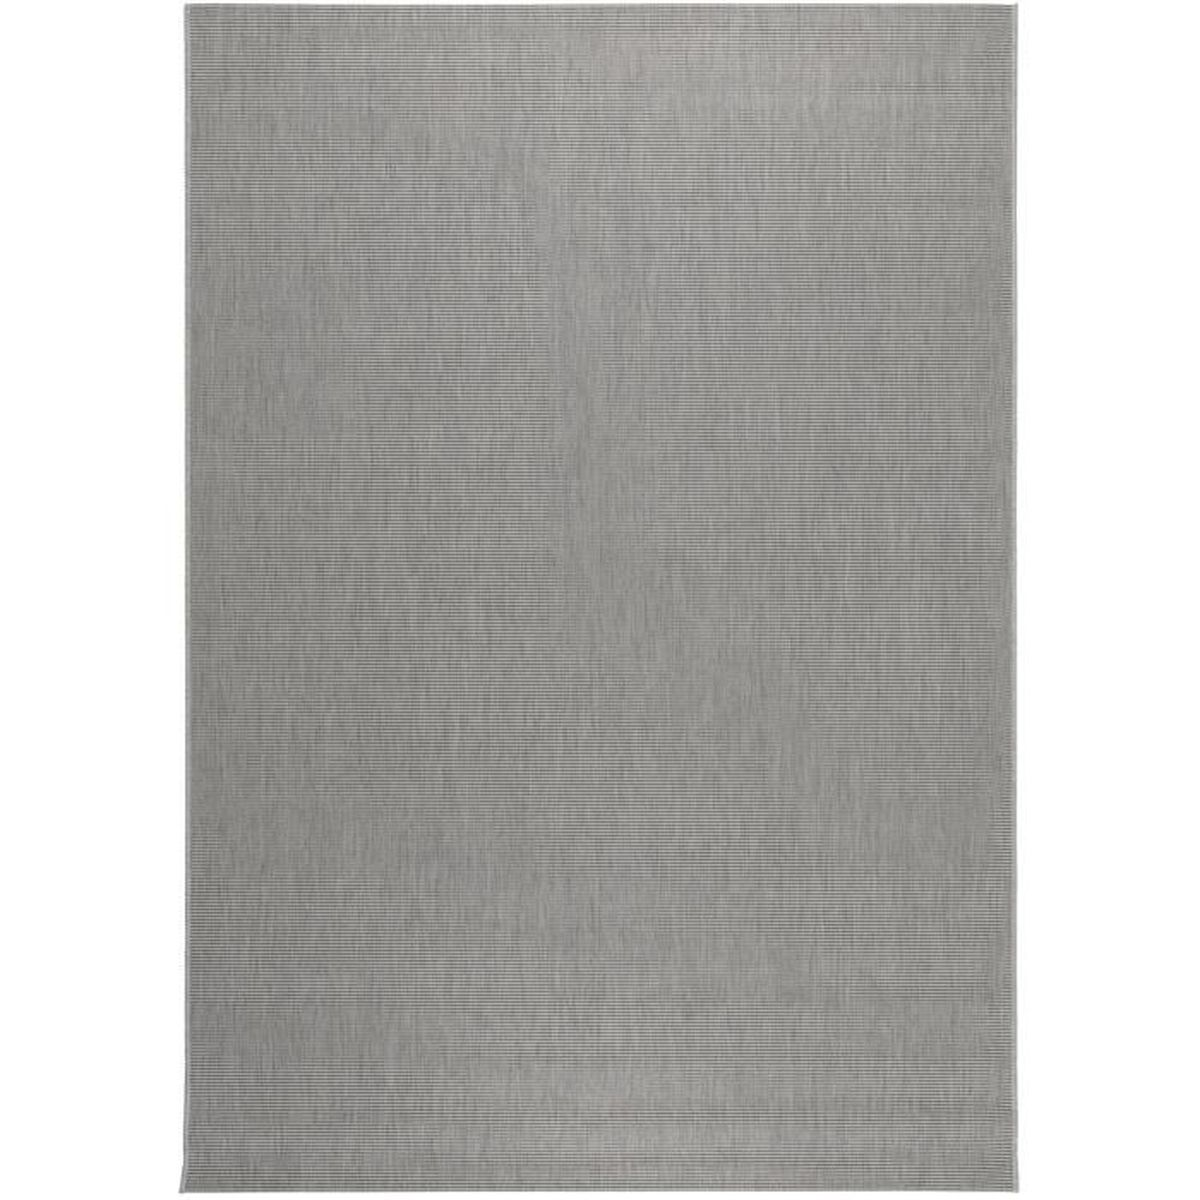 tapis exterieur gris200 200 achat vente tapis exterieur gris200 200 pas cher cdiscount. Black Bedroom Furniture Sets. Home Design Ideas